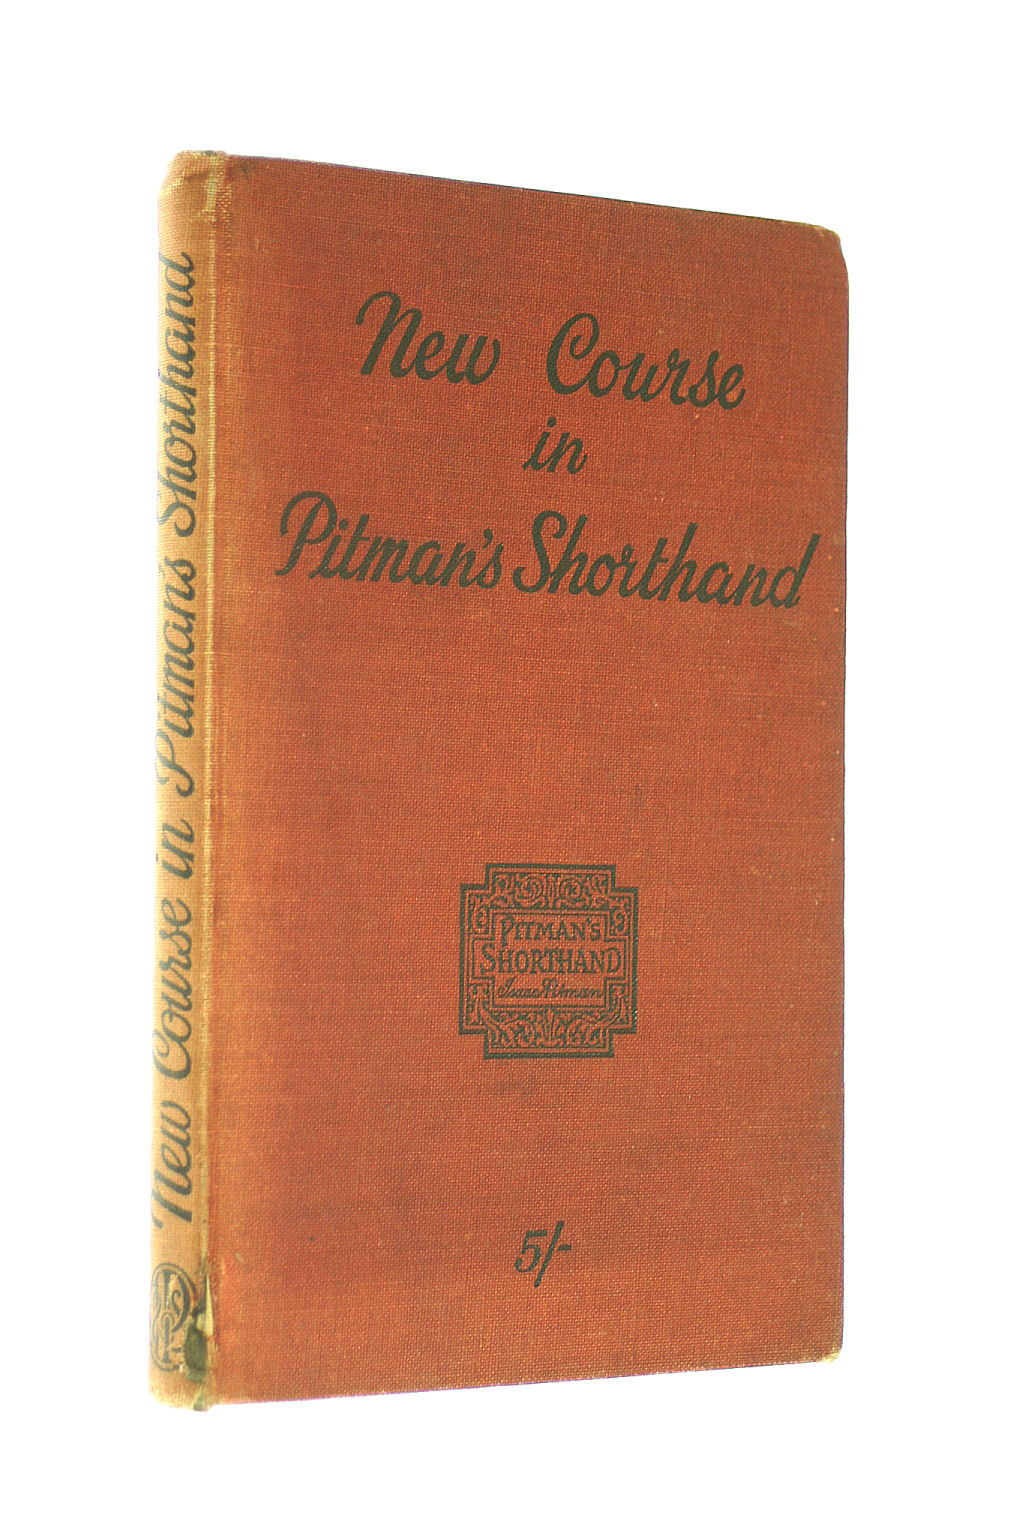 Image for New Course In Pitman'S Shorthand